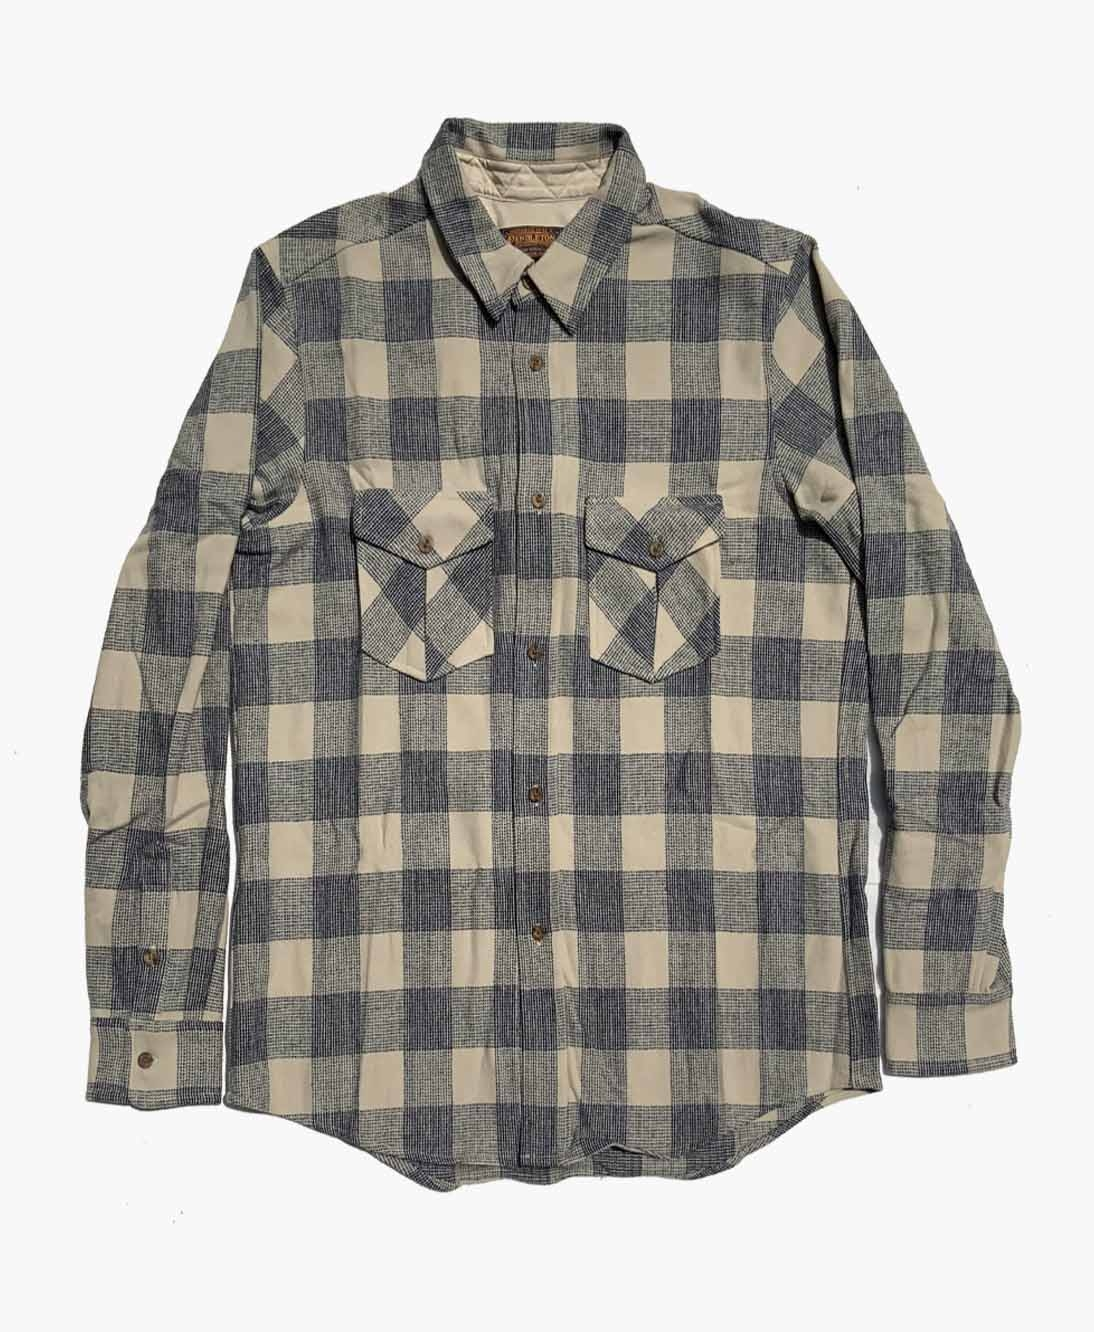 The Portland Collection Shirt